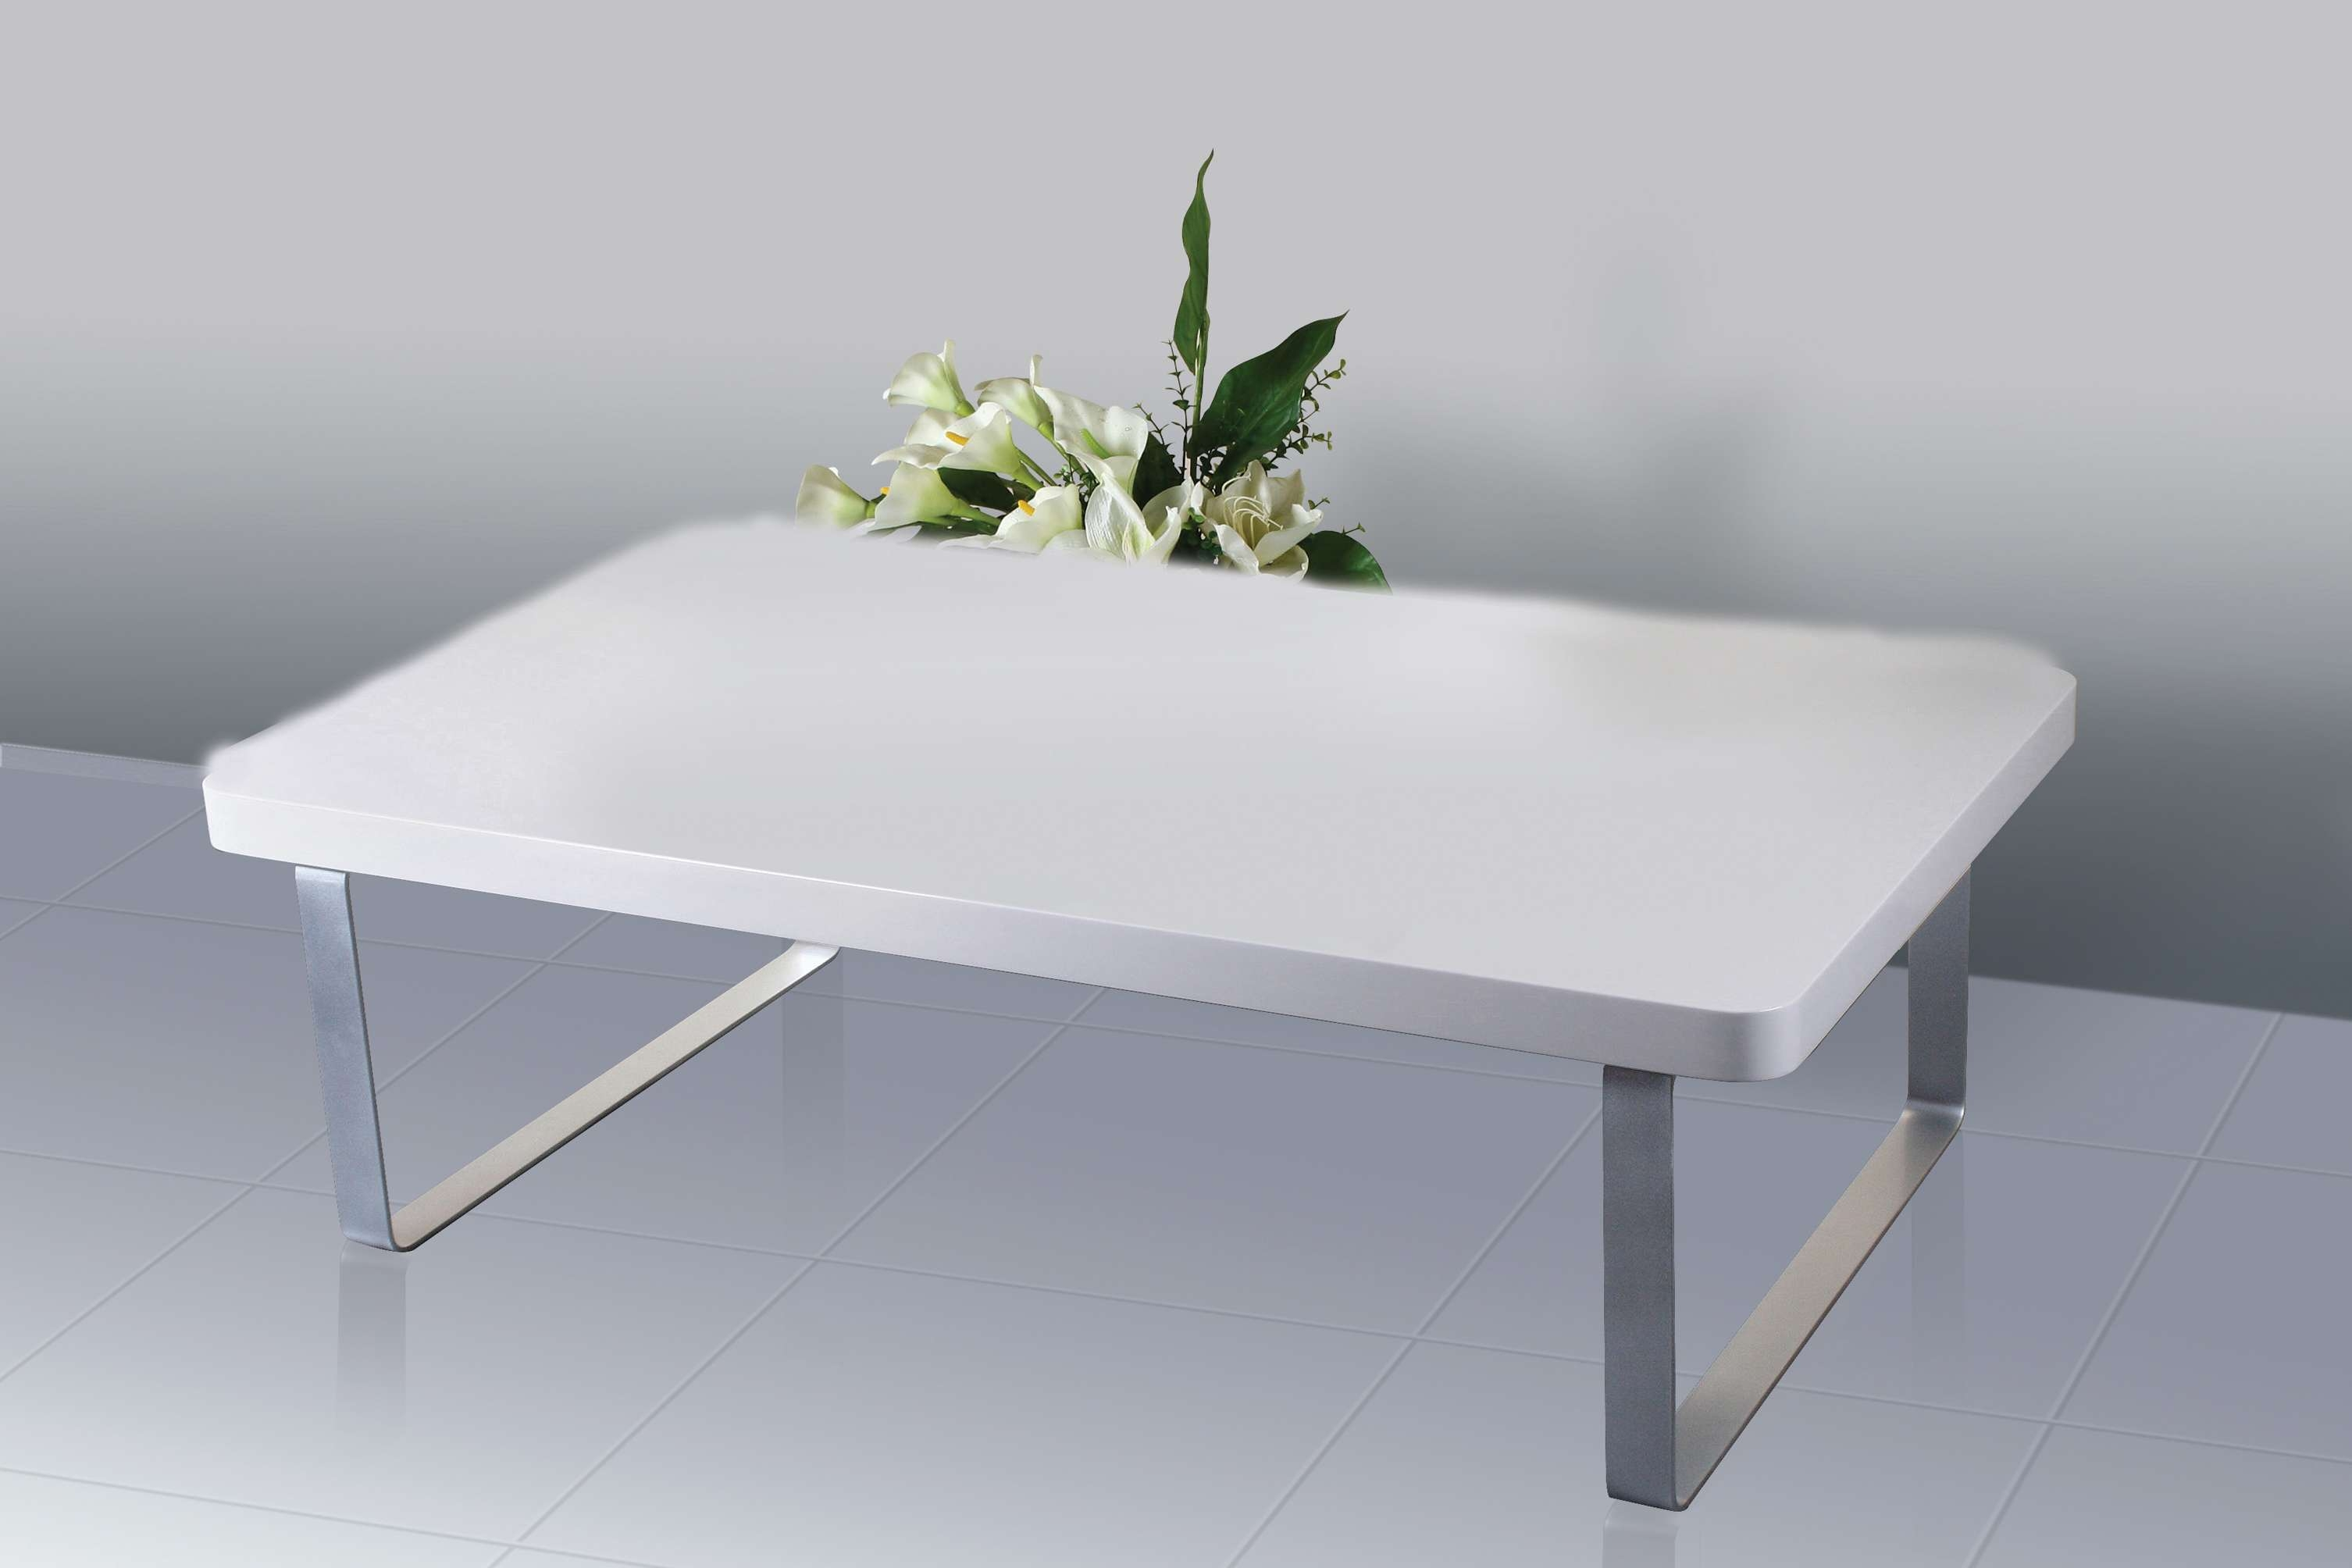 White High Gloss Coffee Table Australia On With Hd Resolution Regarding Favorite White High Gloss Coffee Tables (View 6 of 20)